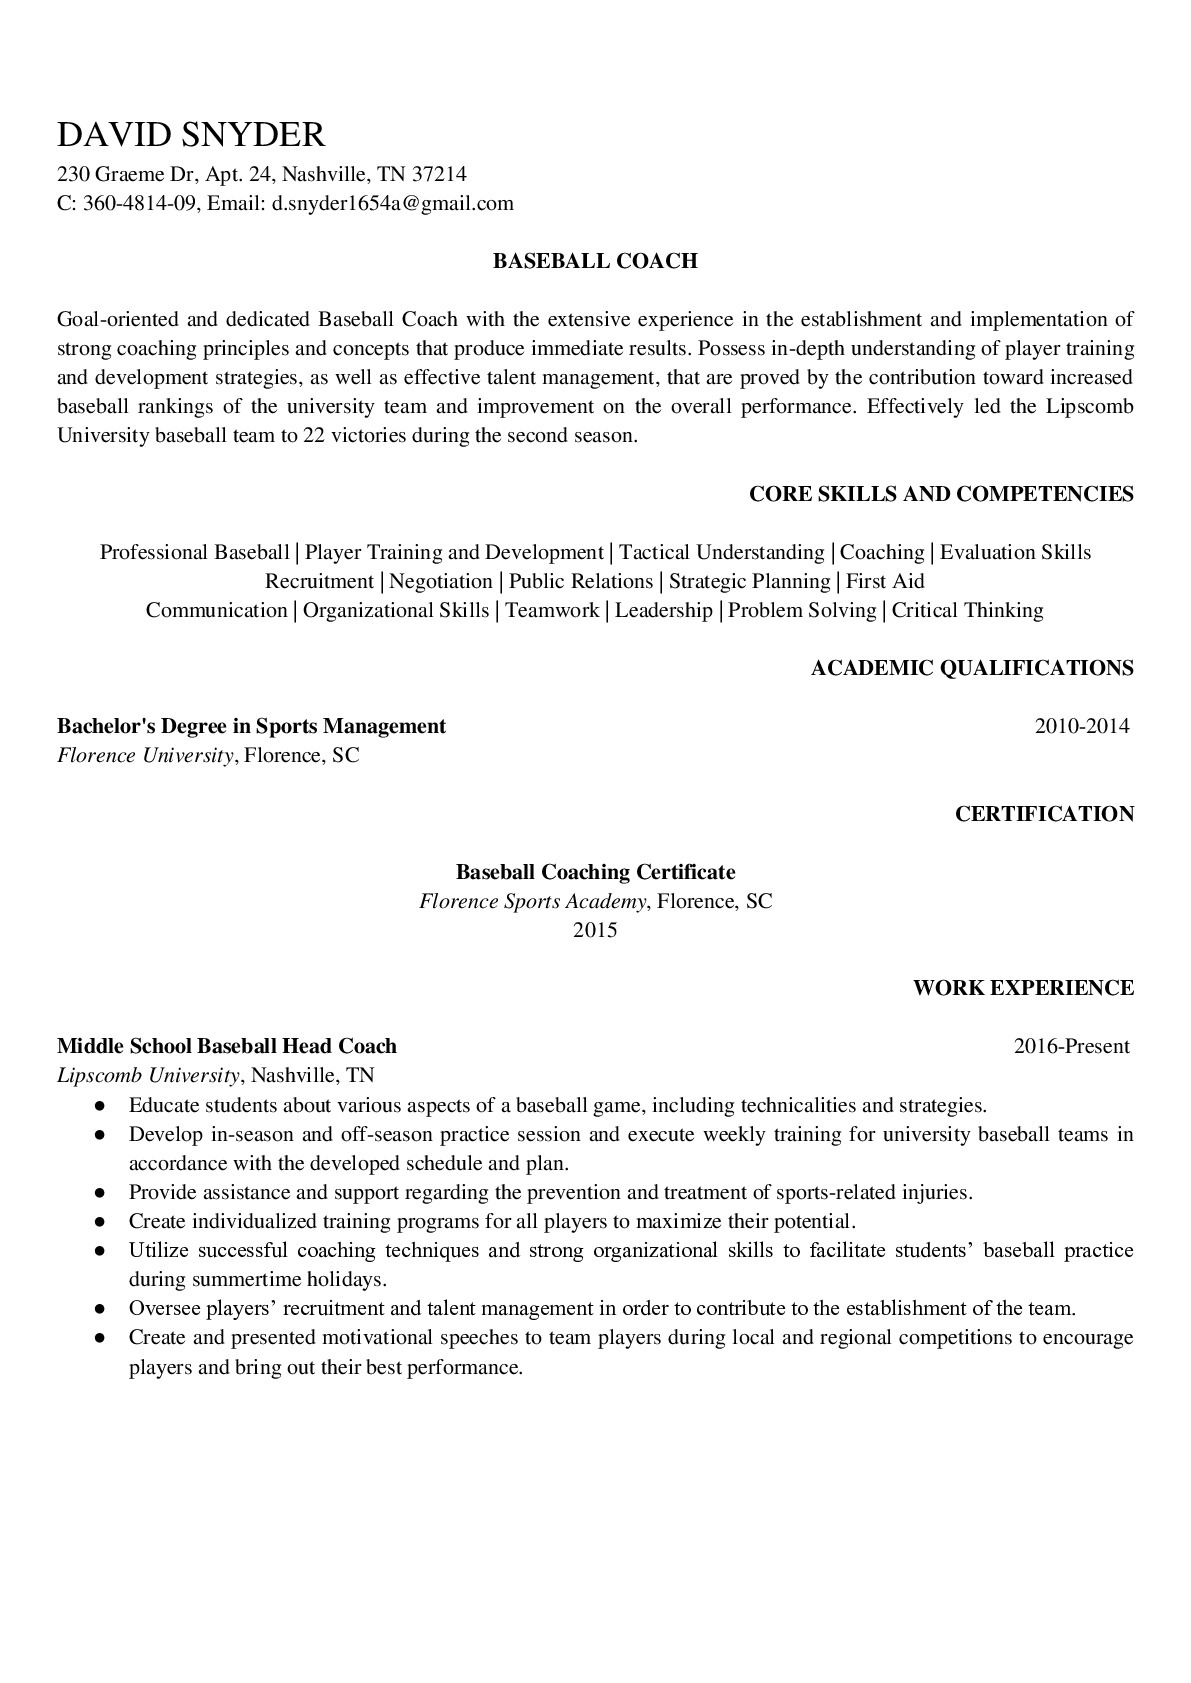 baseball coach resume examples 2019